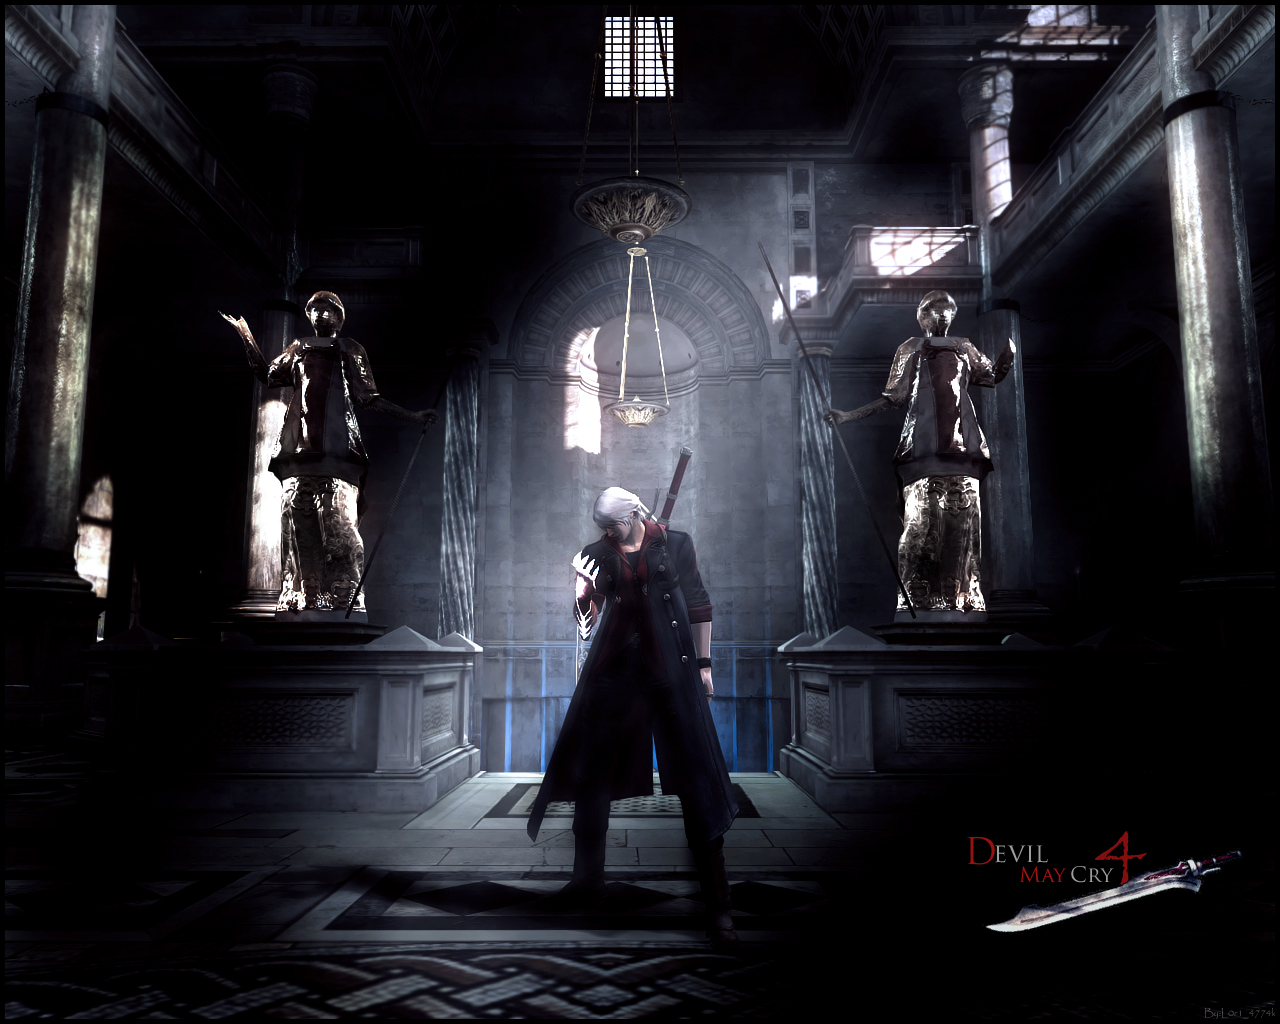 Wallpapers Hd Free Download Devil May Cry 5 Wallpaper